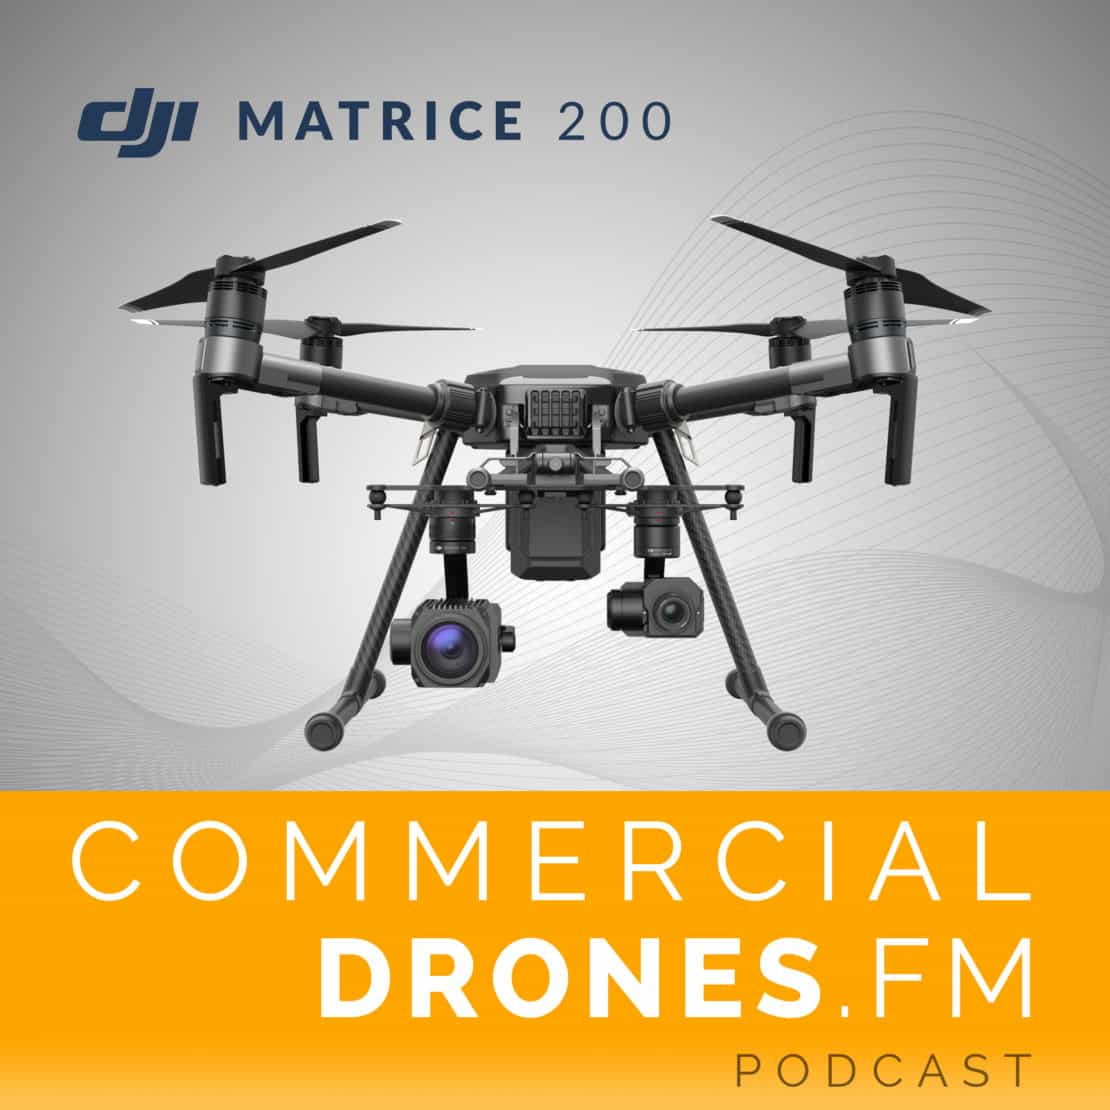 Commercial Drones FM Podcast - DJI Matrice 200 Drone Platform Overview